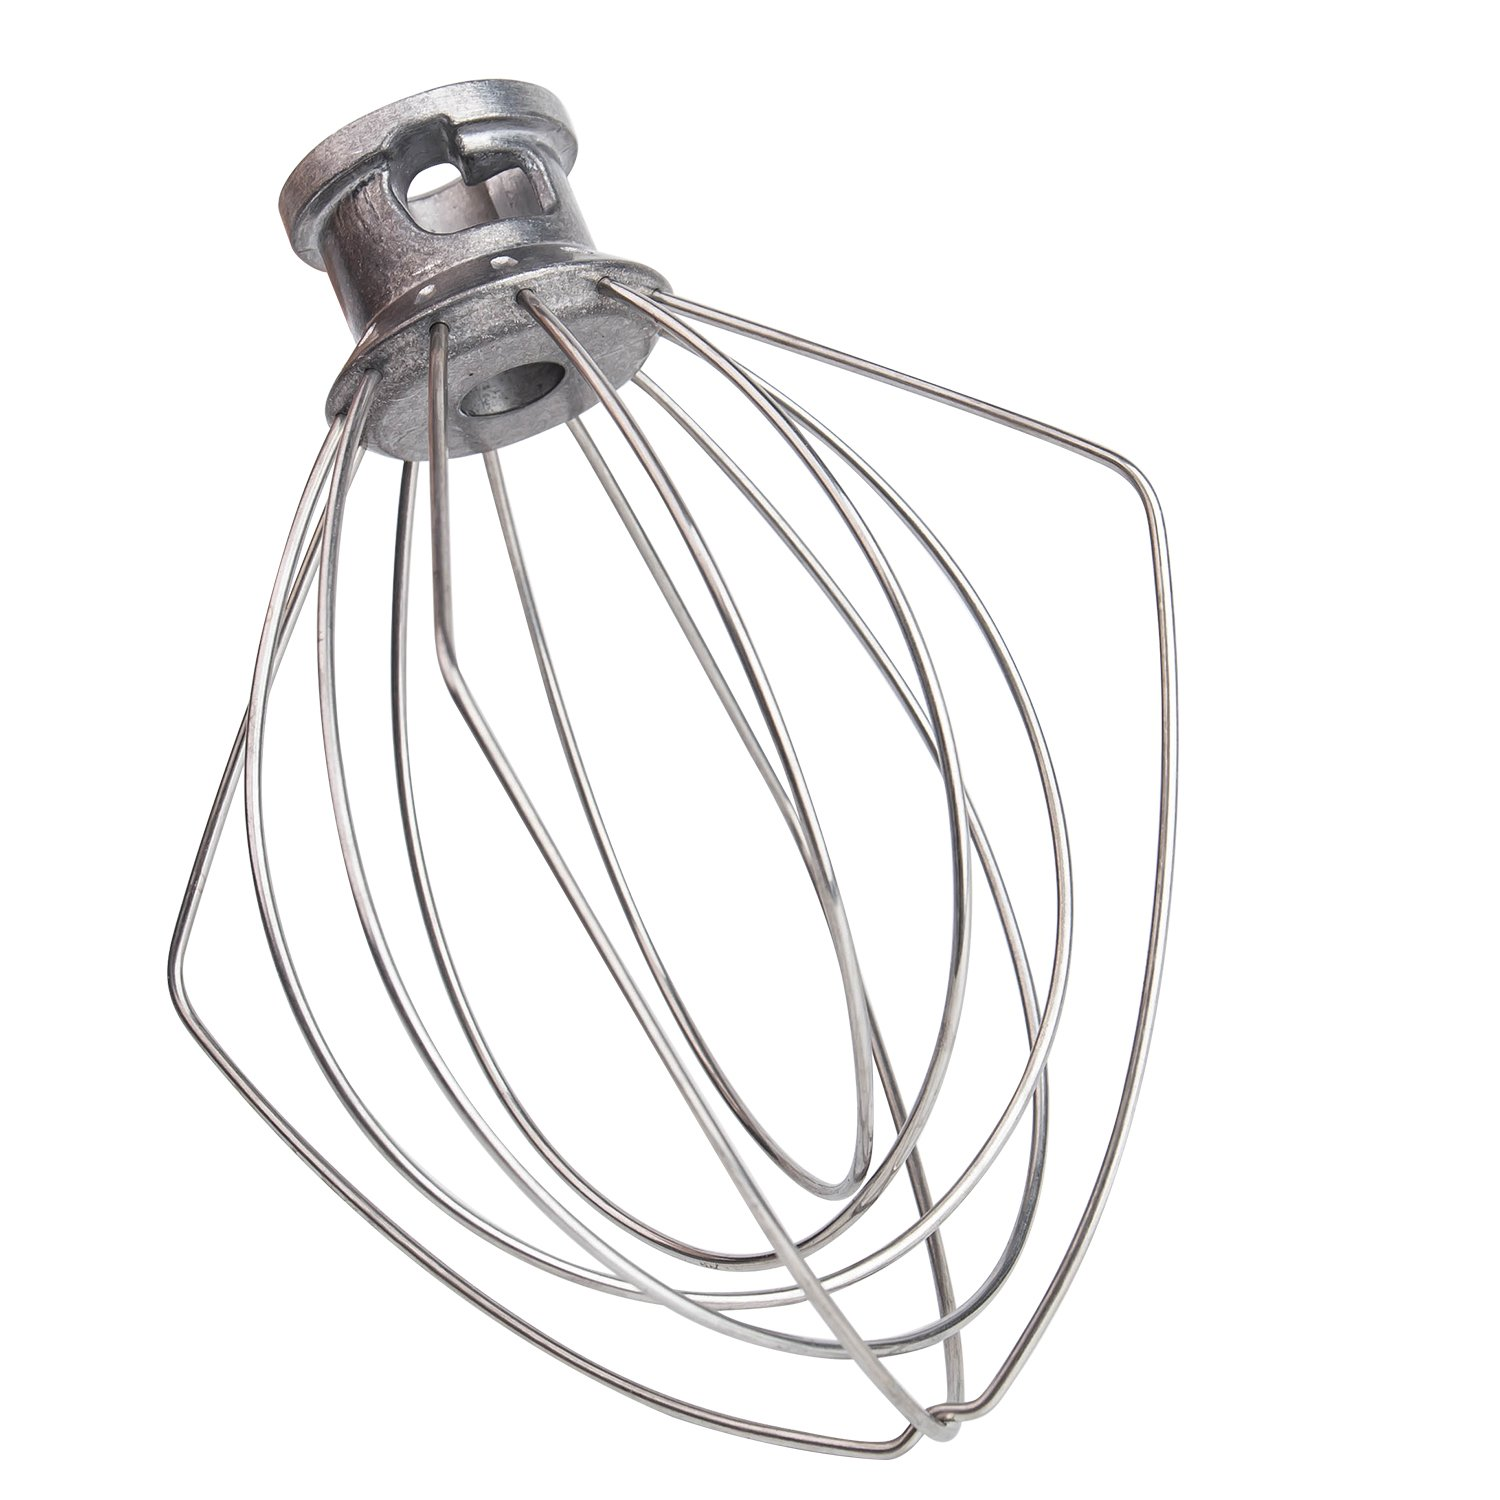 PAKIMARK K45WW Wire Whip for Tilt-Head Stand Mixer for KitchenAid, Stainless Steel Egg Cream Stirrer, Flour Cake Balloon Whisk, Easy for Kitchen and Life by PAKIMARK (Image #4)